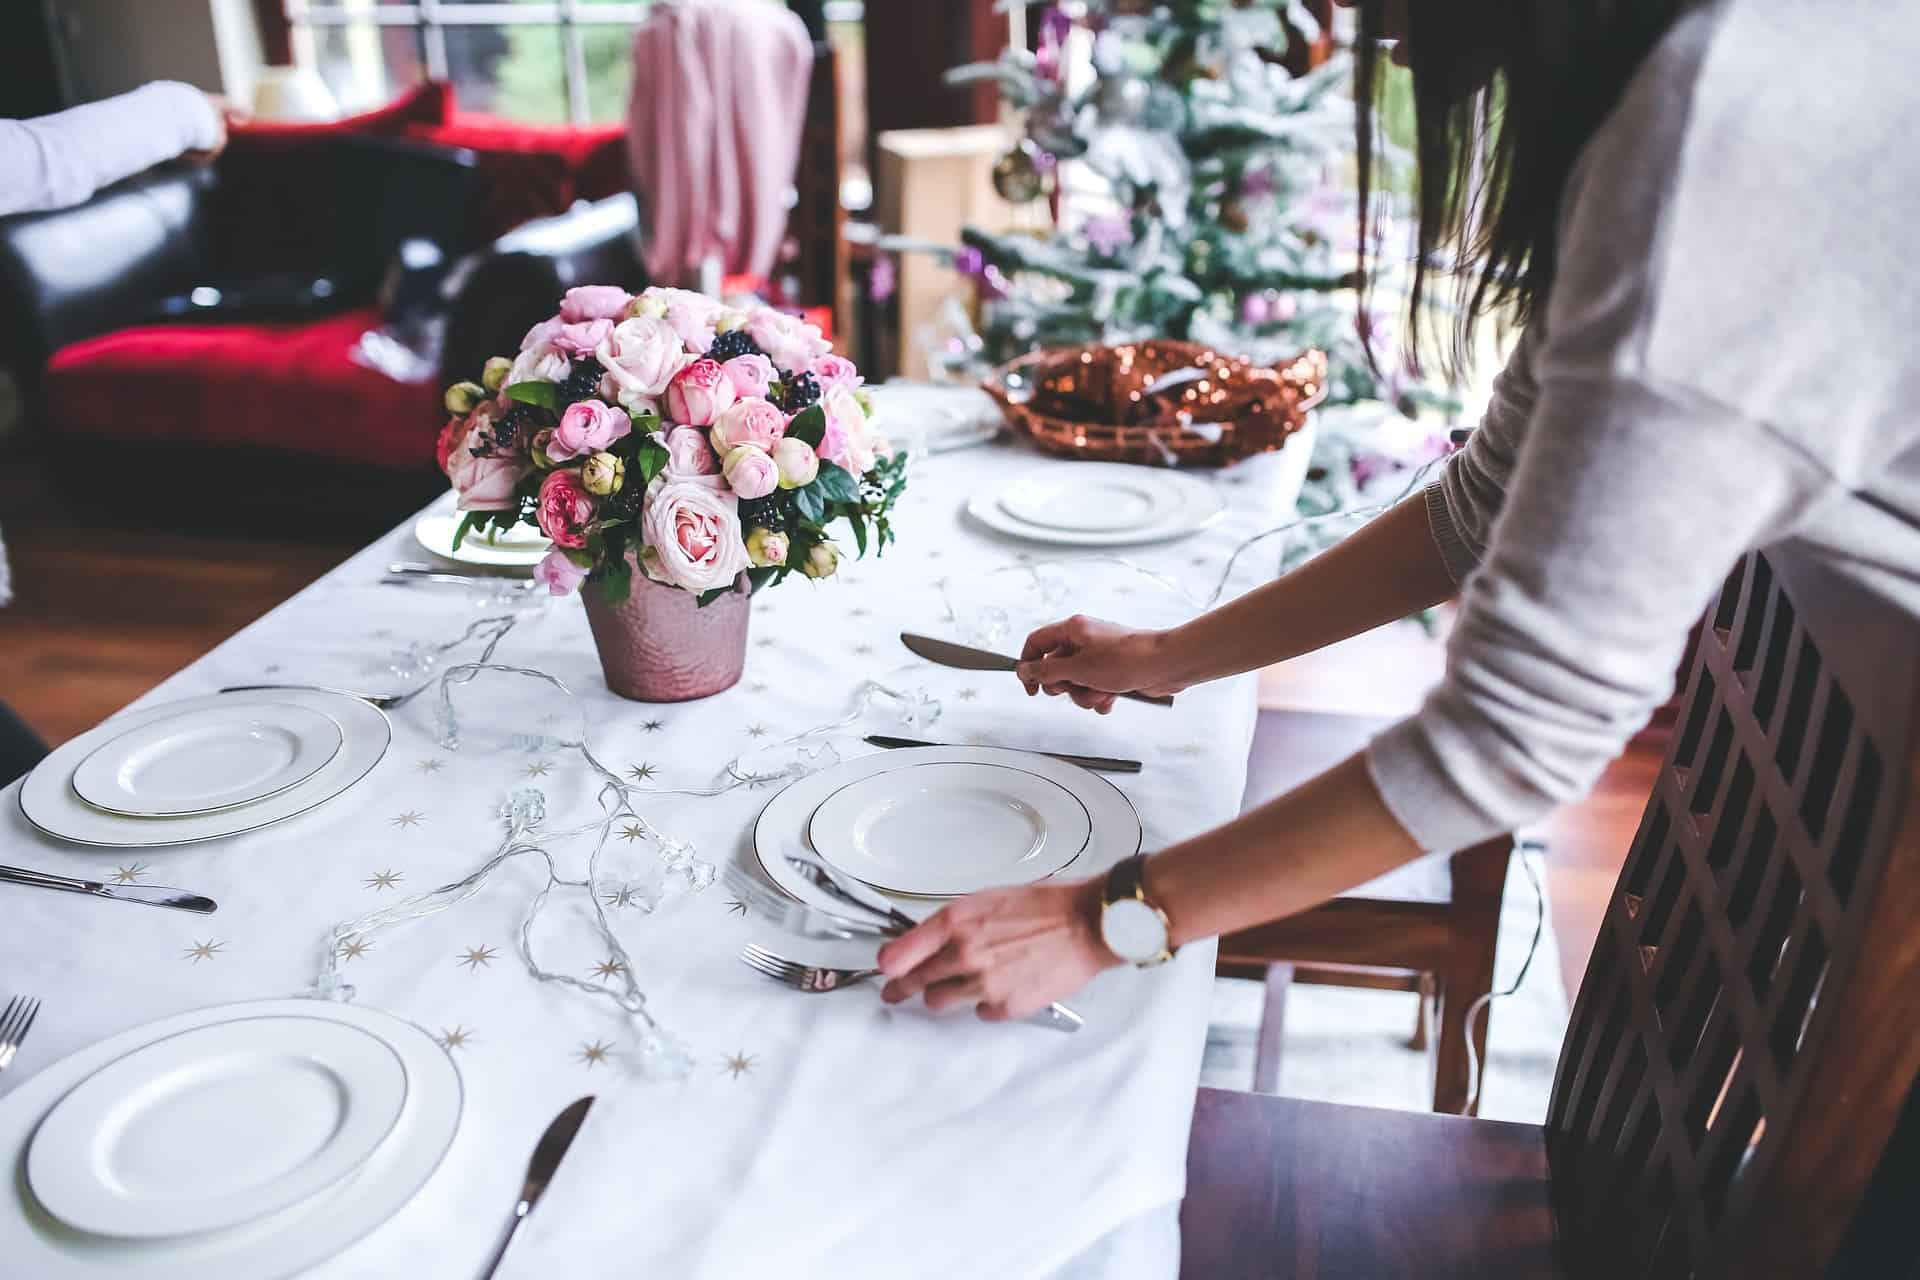 women's arms setting the table